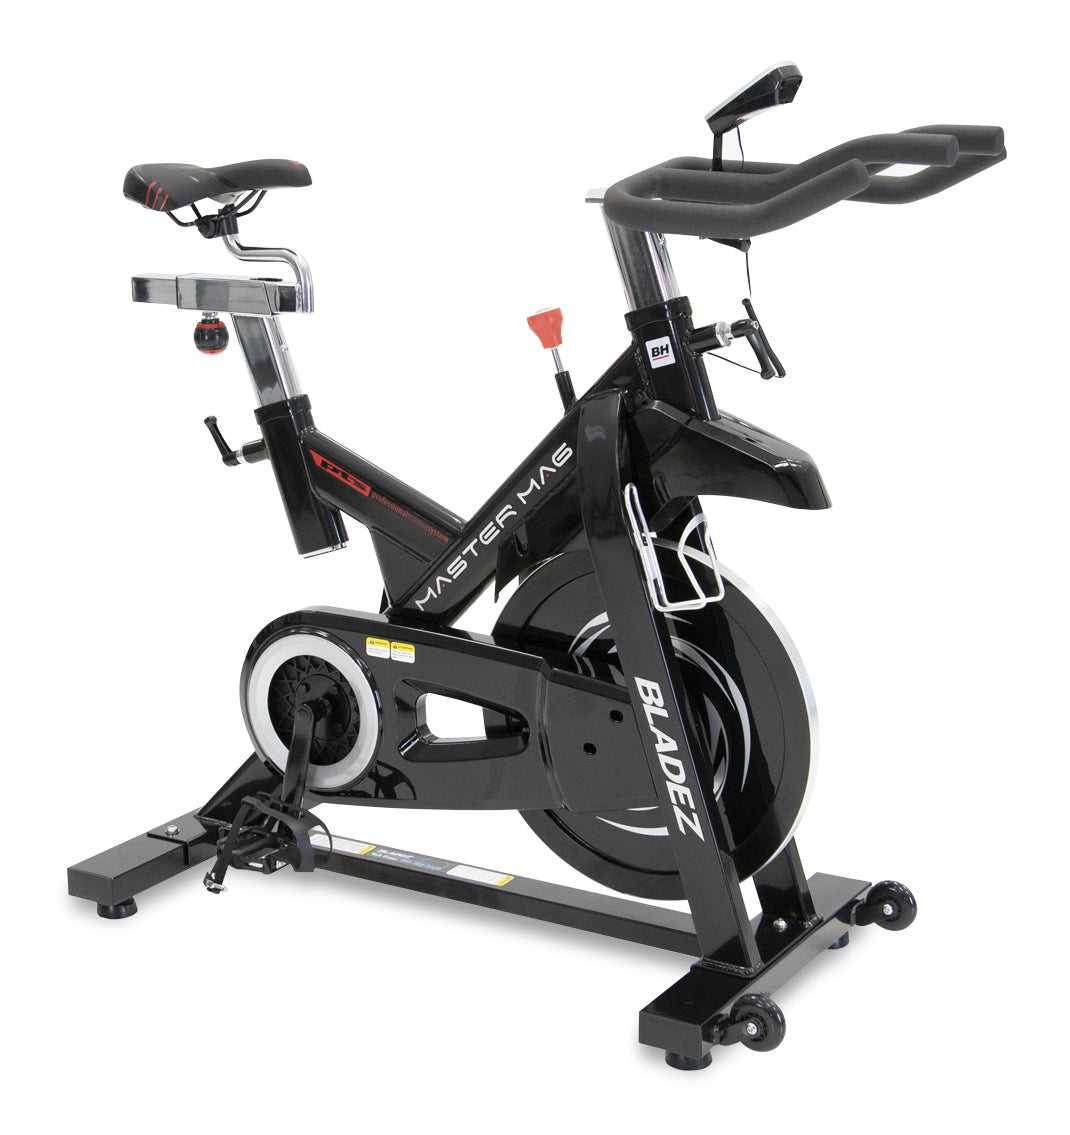 BH Fitness MASTER MAG Indoor Cycle